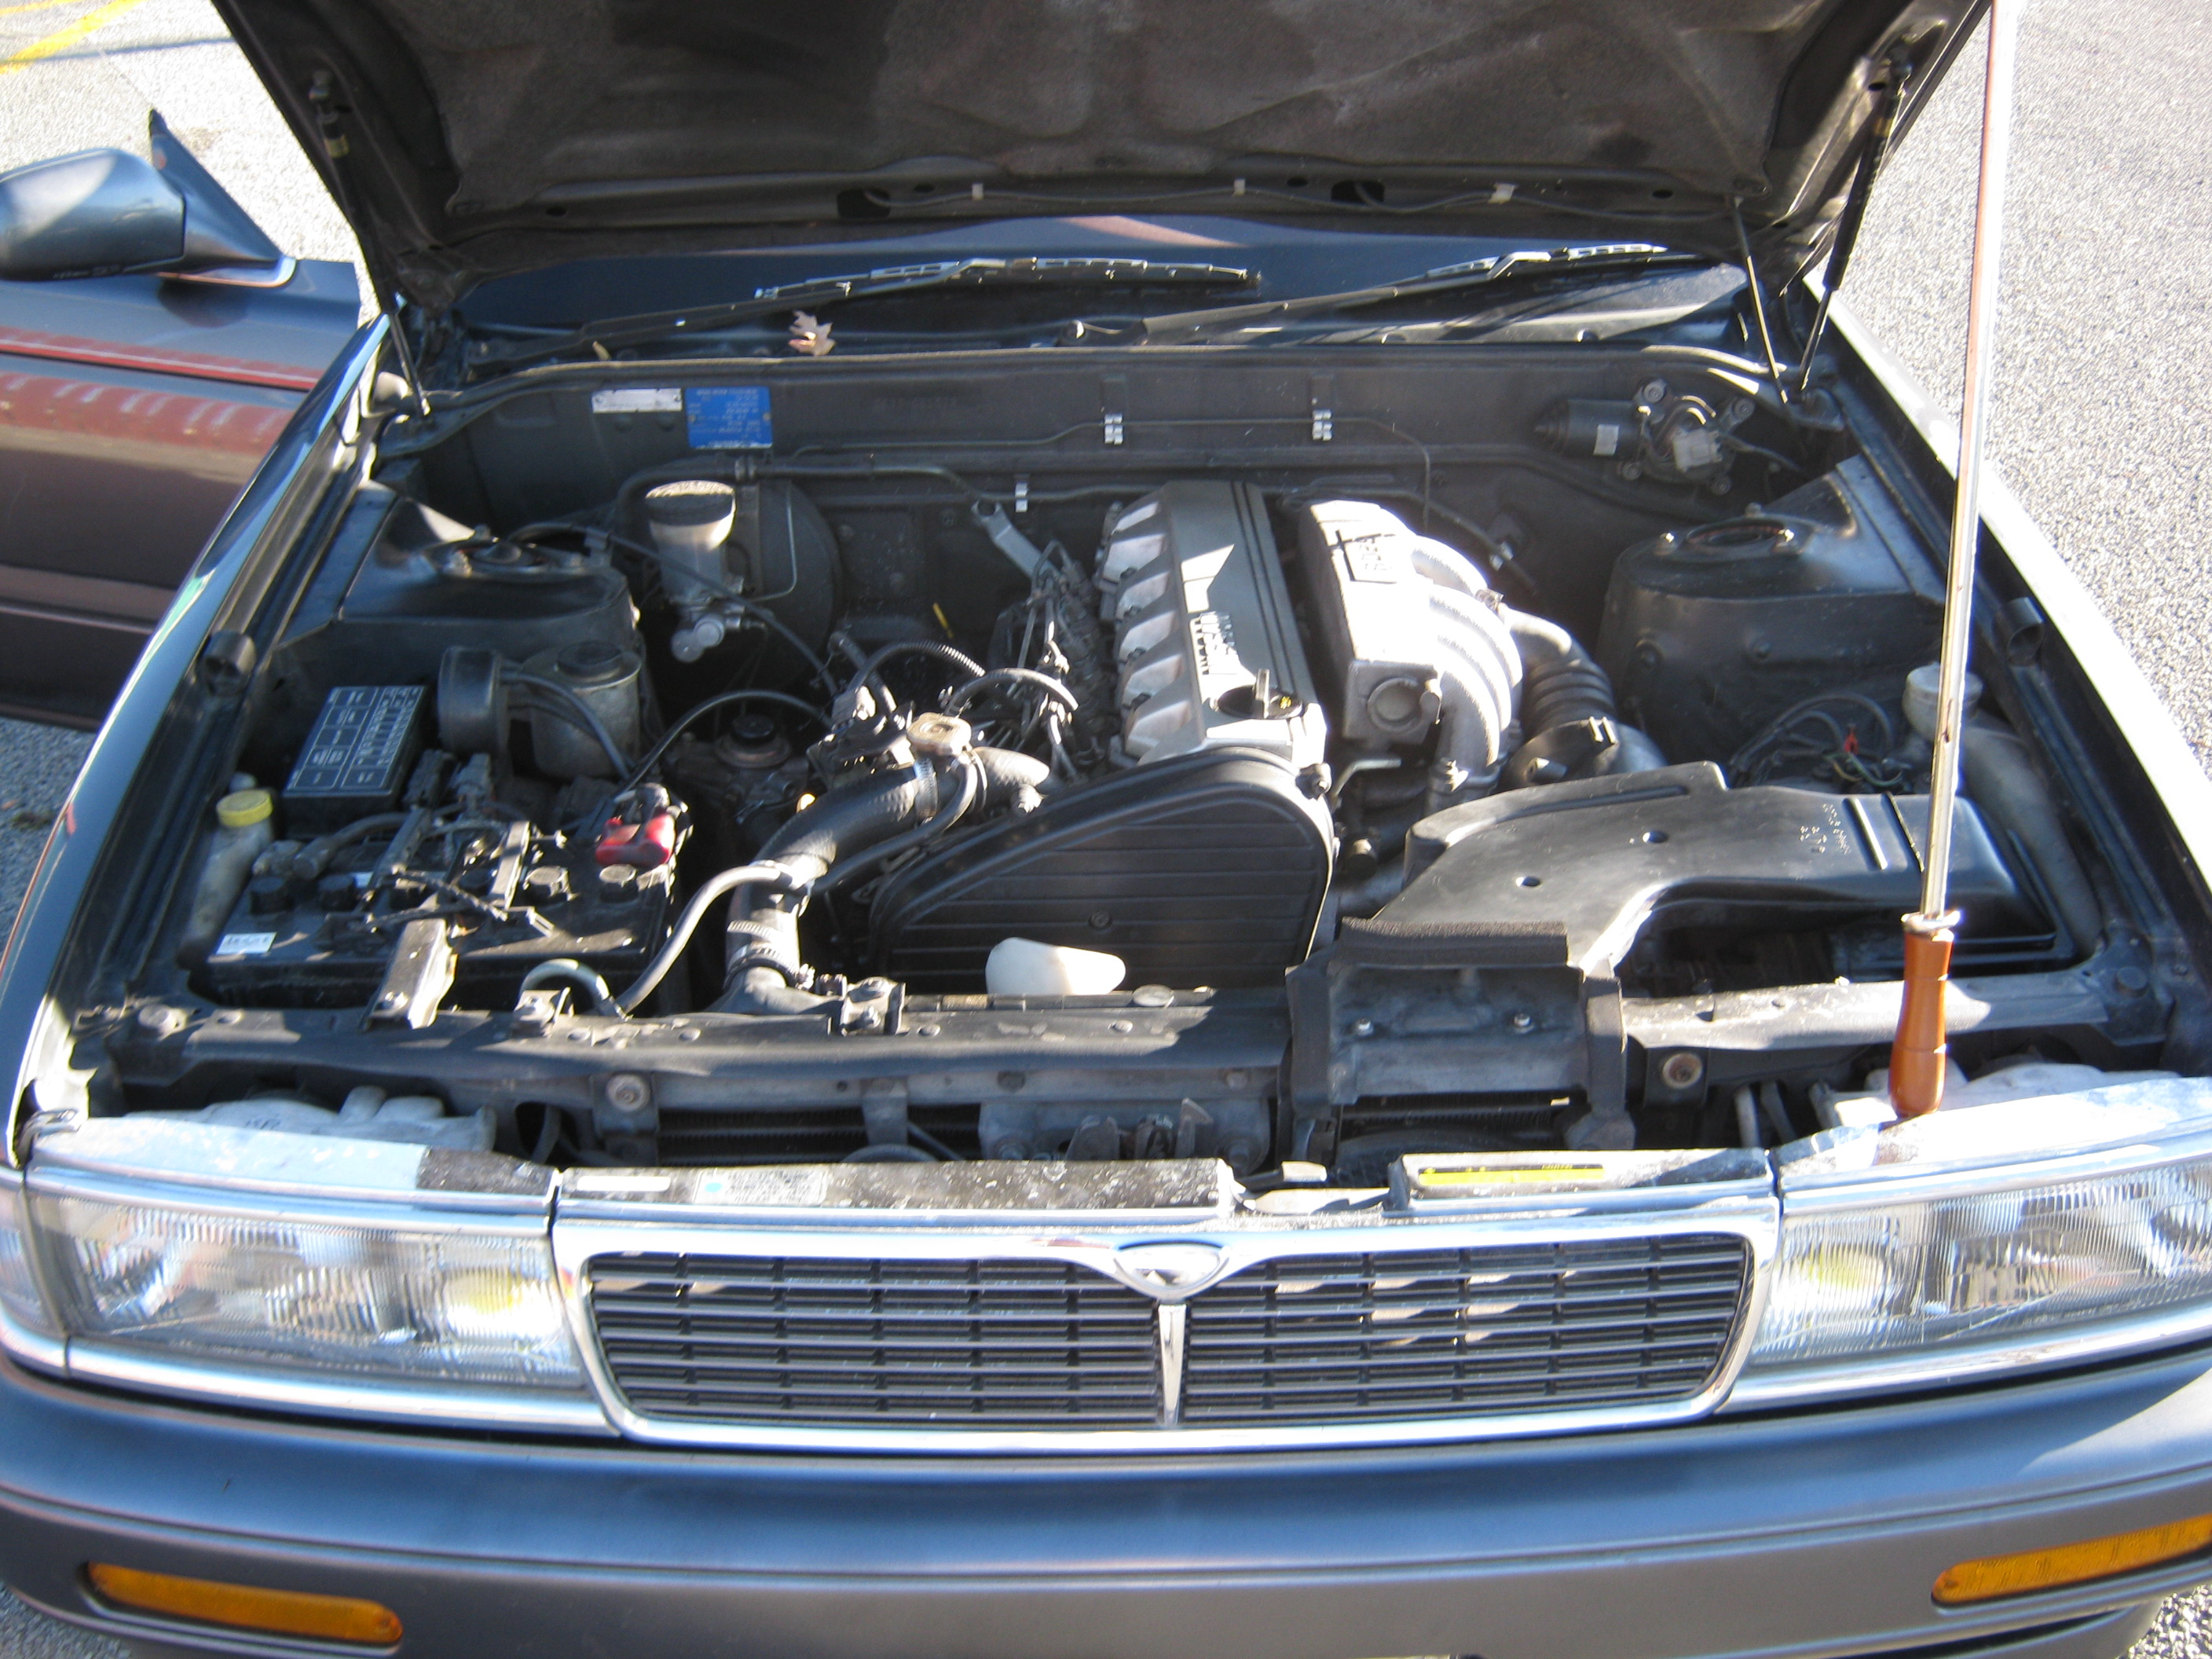 Nissan Rd Engine Wikipedia 97 Altima Diagram Rd28 Series 1edit